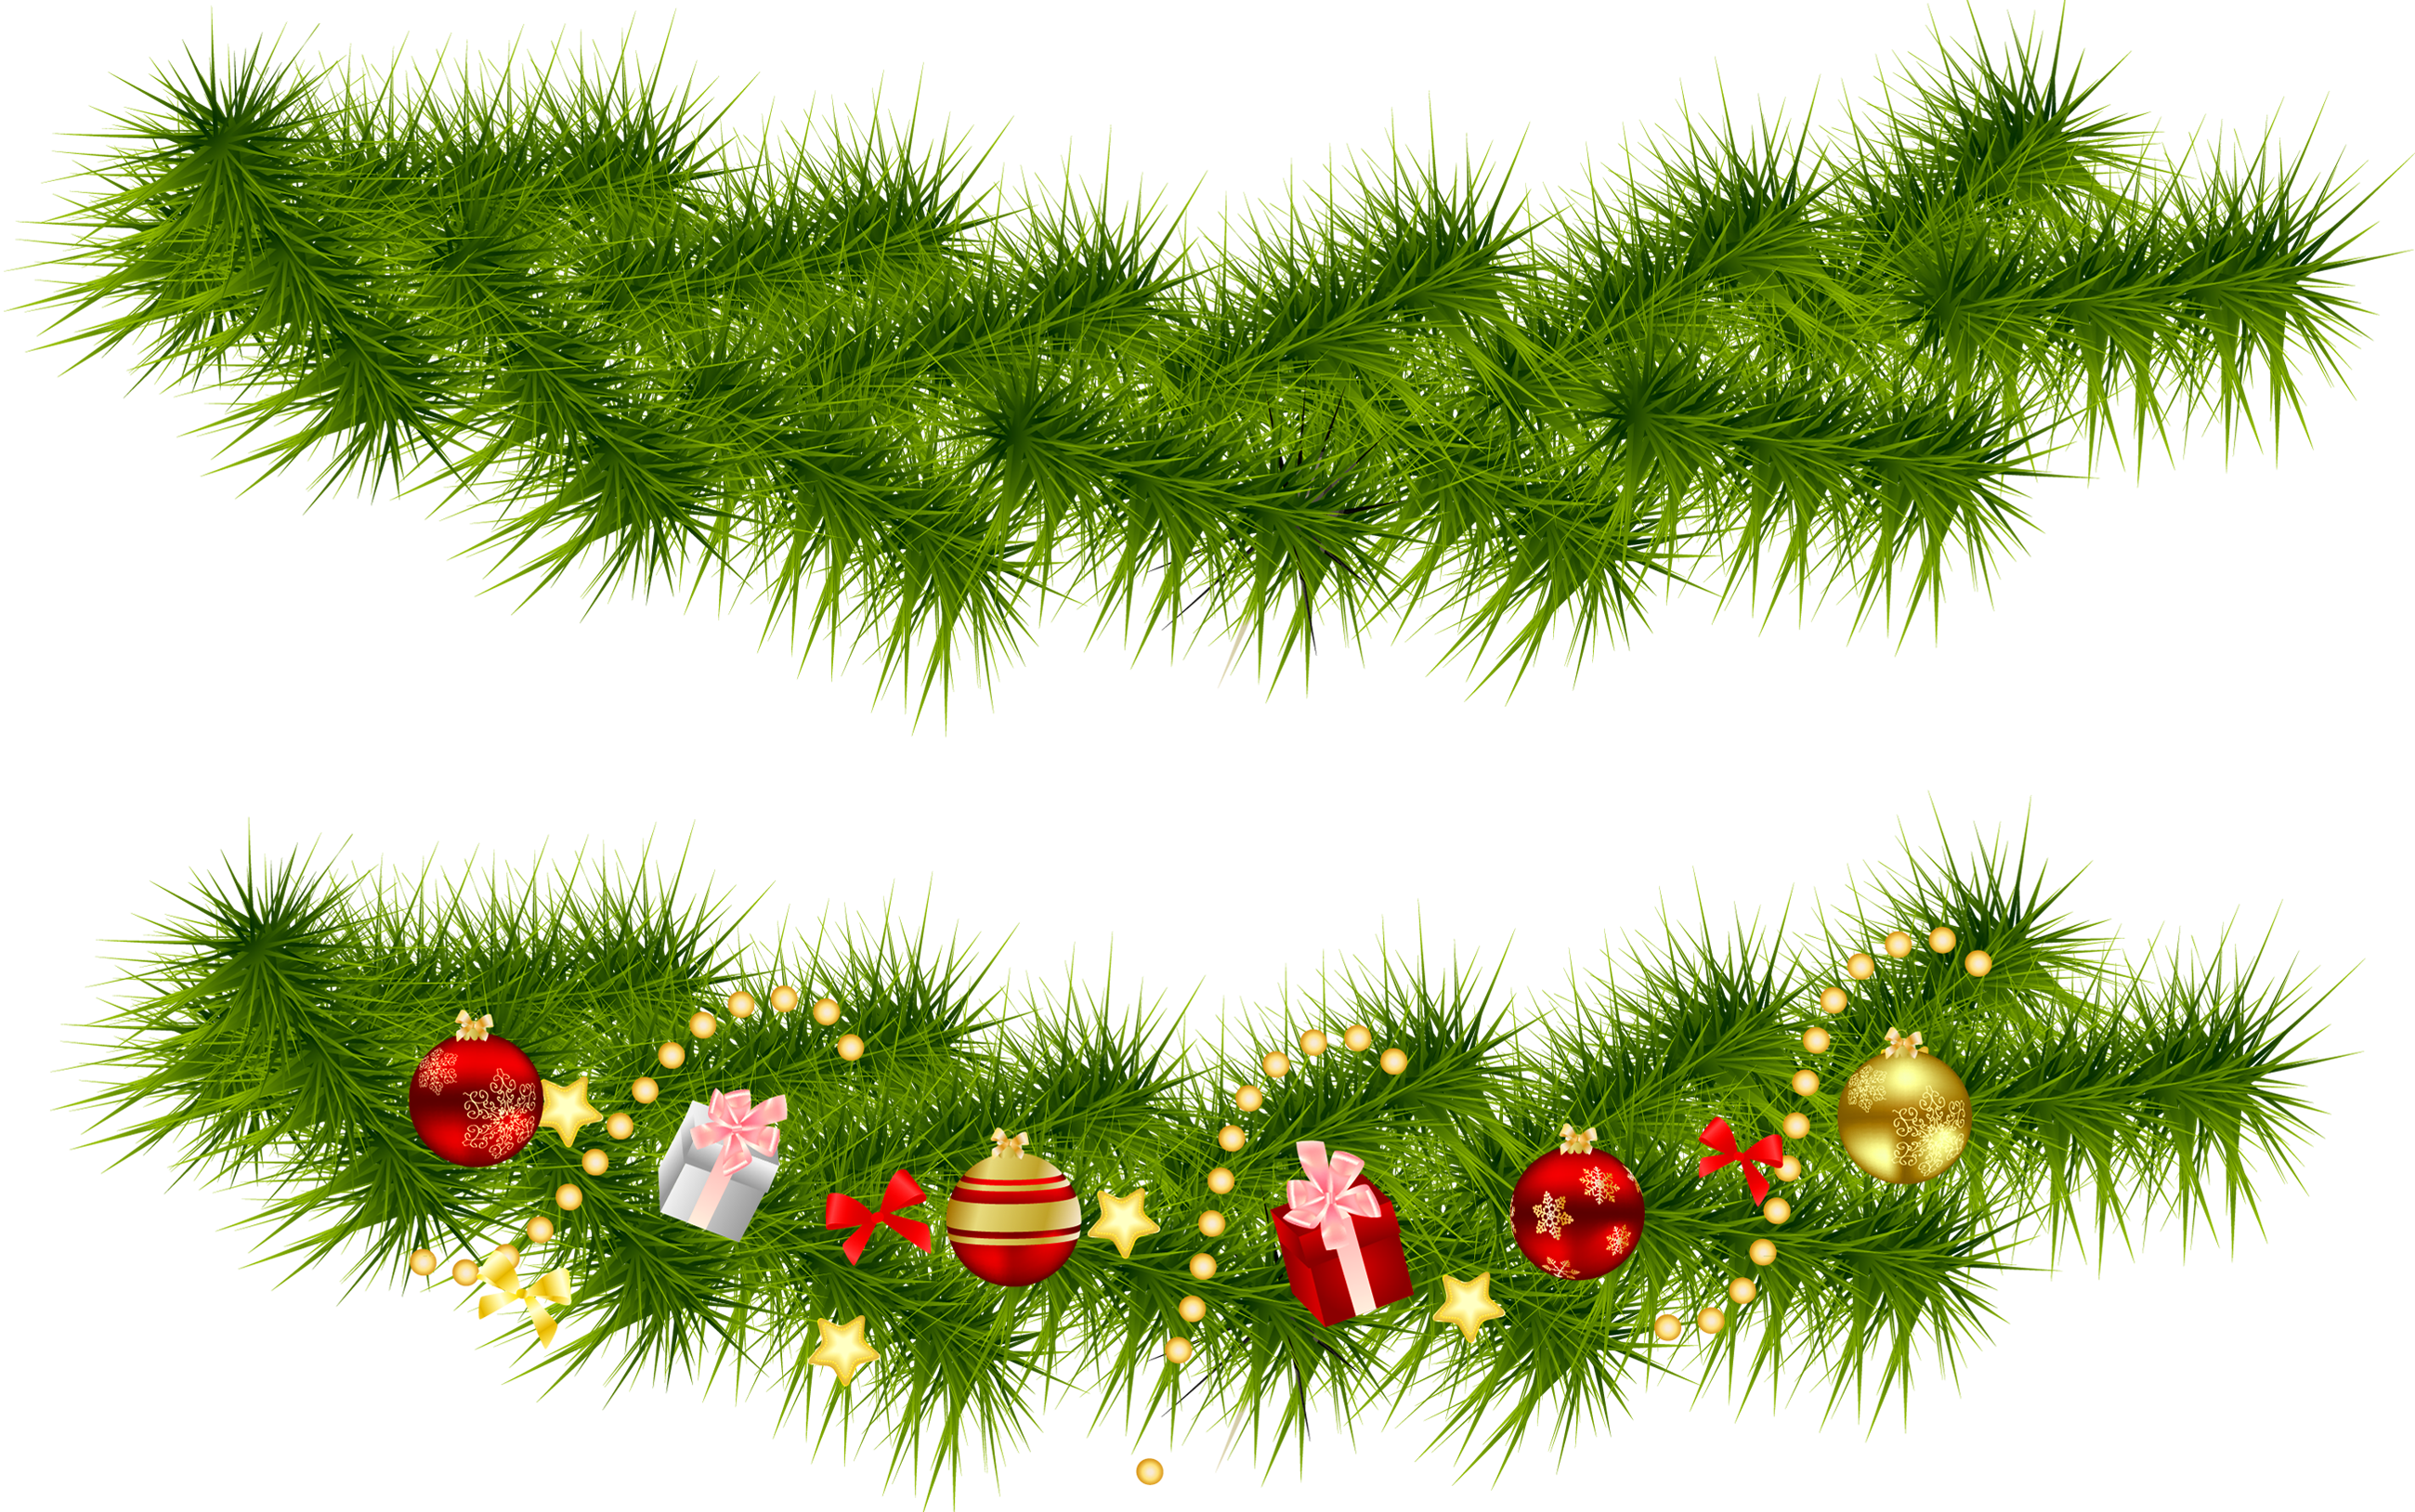 Pine tree border clipart picture freeuse library Transparent Christmas Pine Garlands | Gallery Yopriceville - High ... picture freeuse library